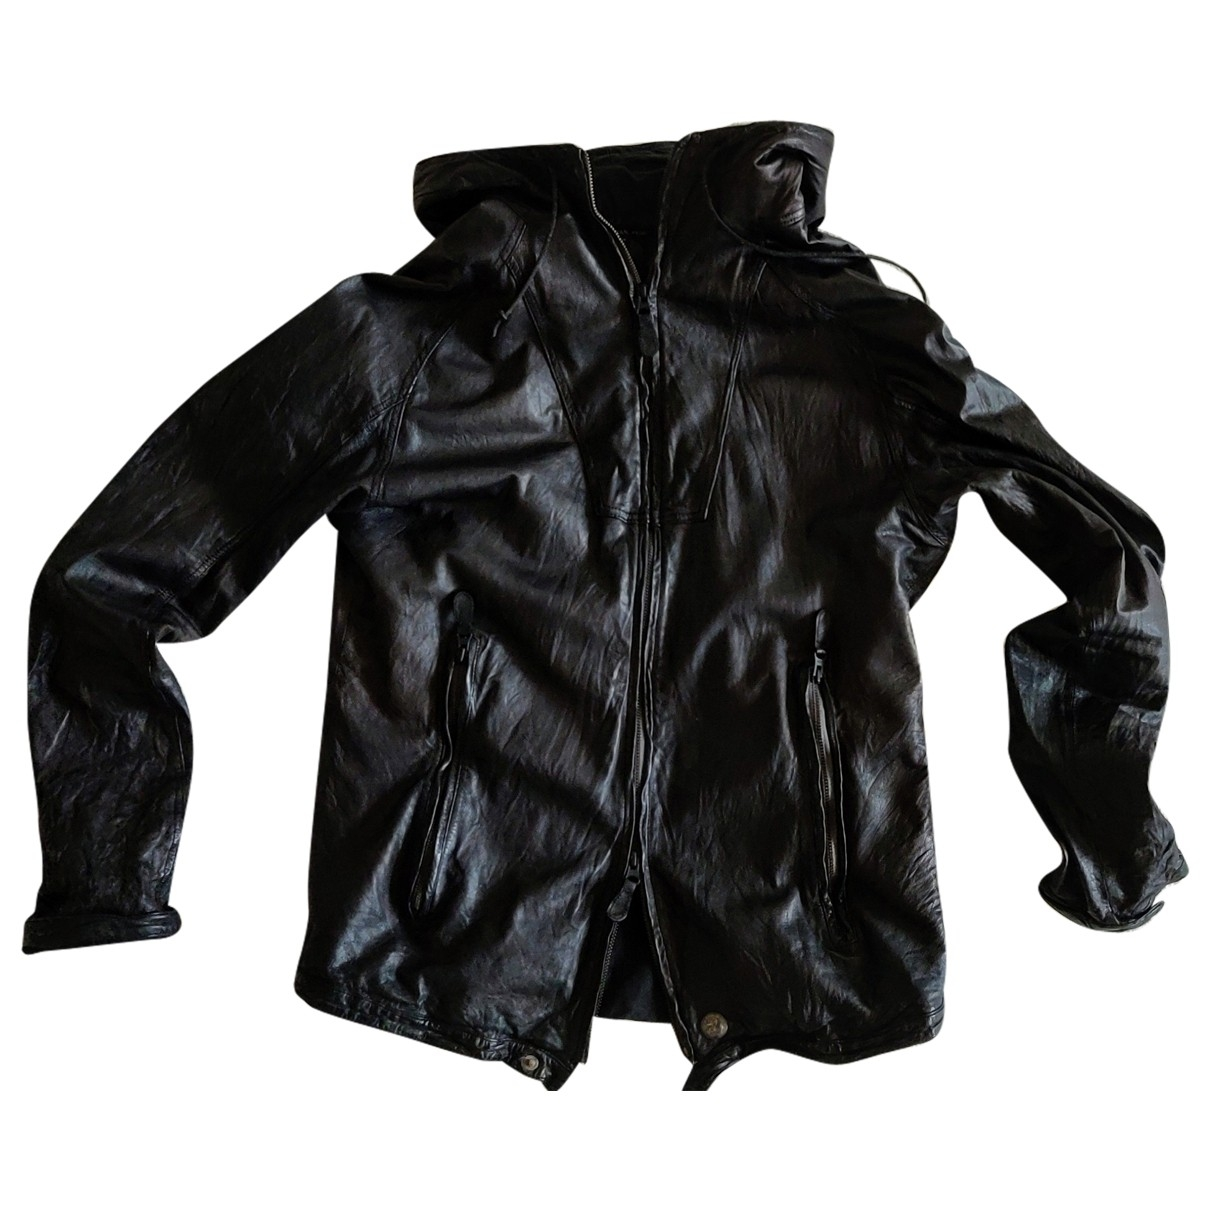 Christian Peau \N Black Leather jacket  for Men L International